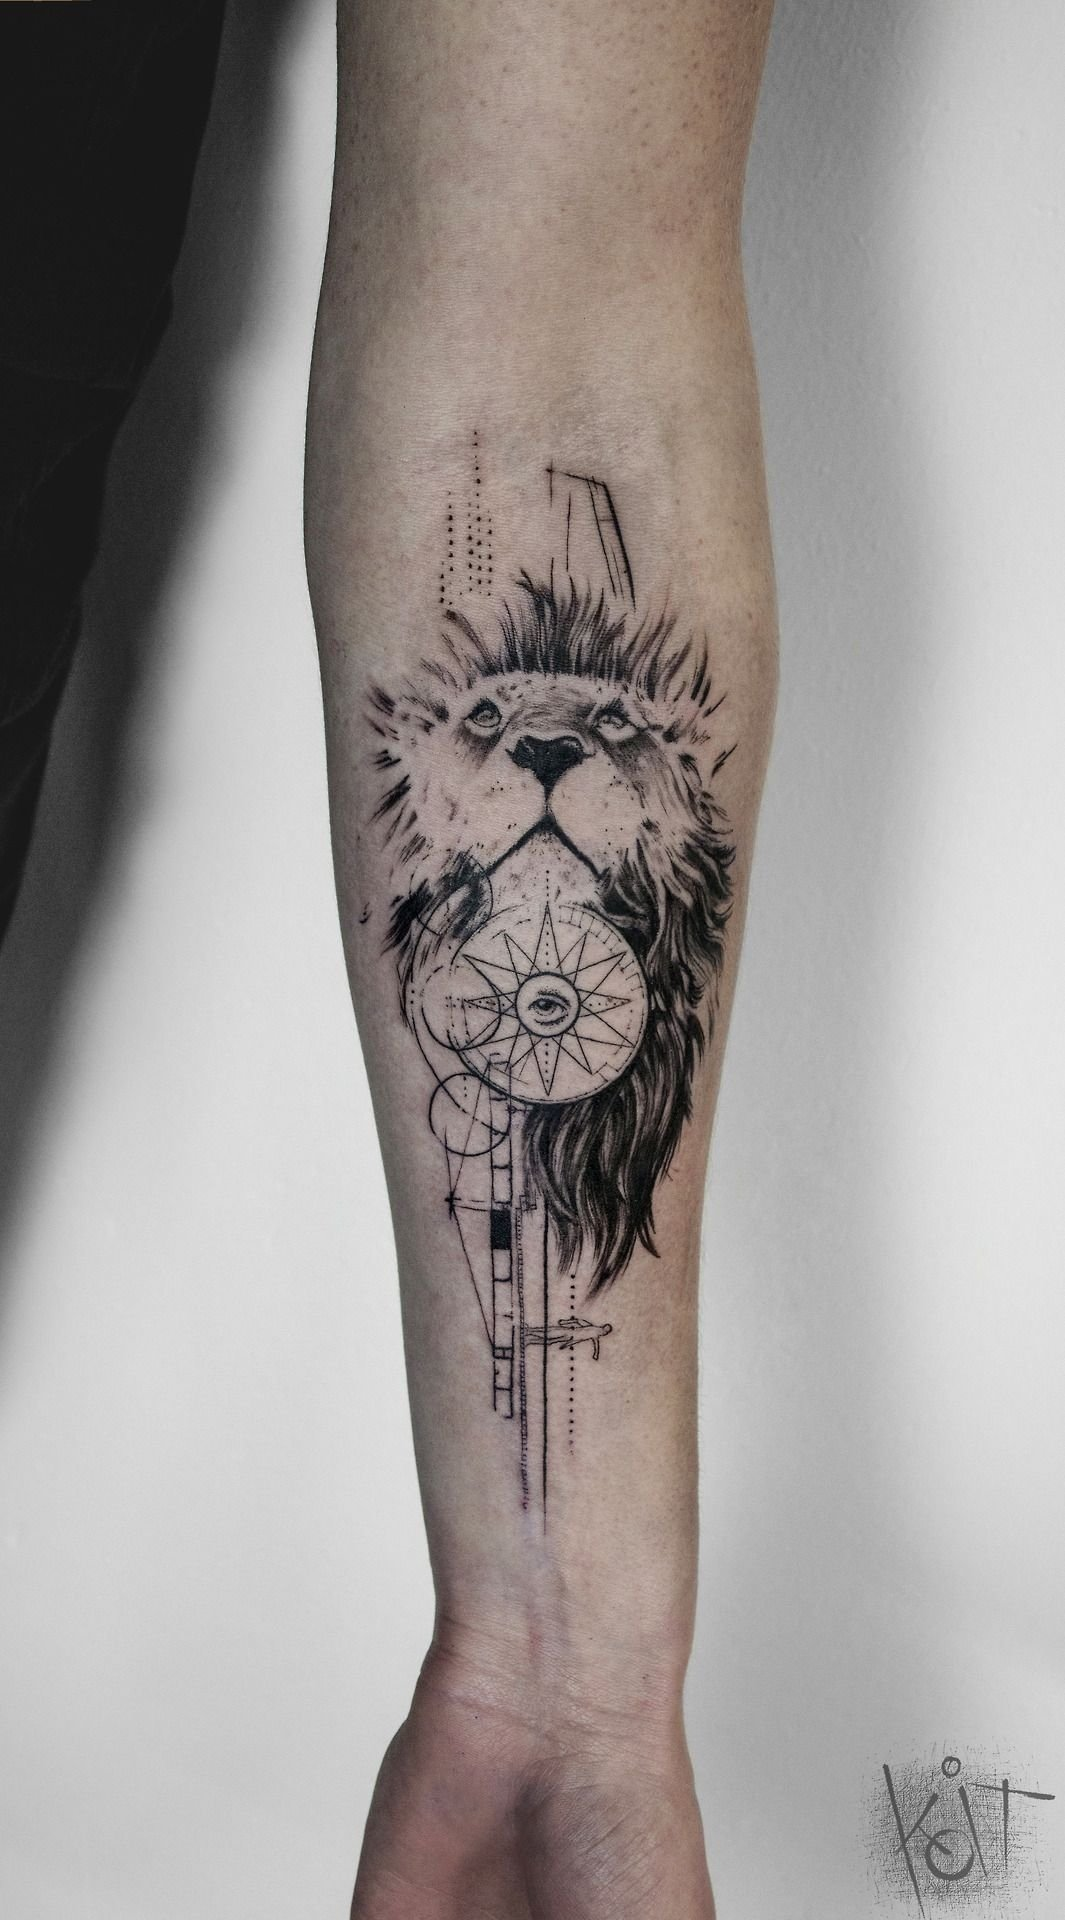 10 Most Popular Tattoo Ideas For Guys Arms by koit berlin forearm black tattoo lion compass and illuminati 1 2020